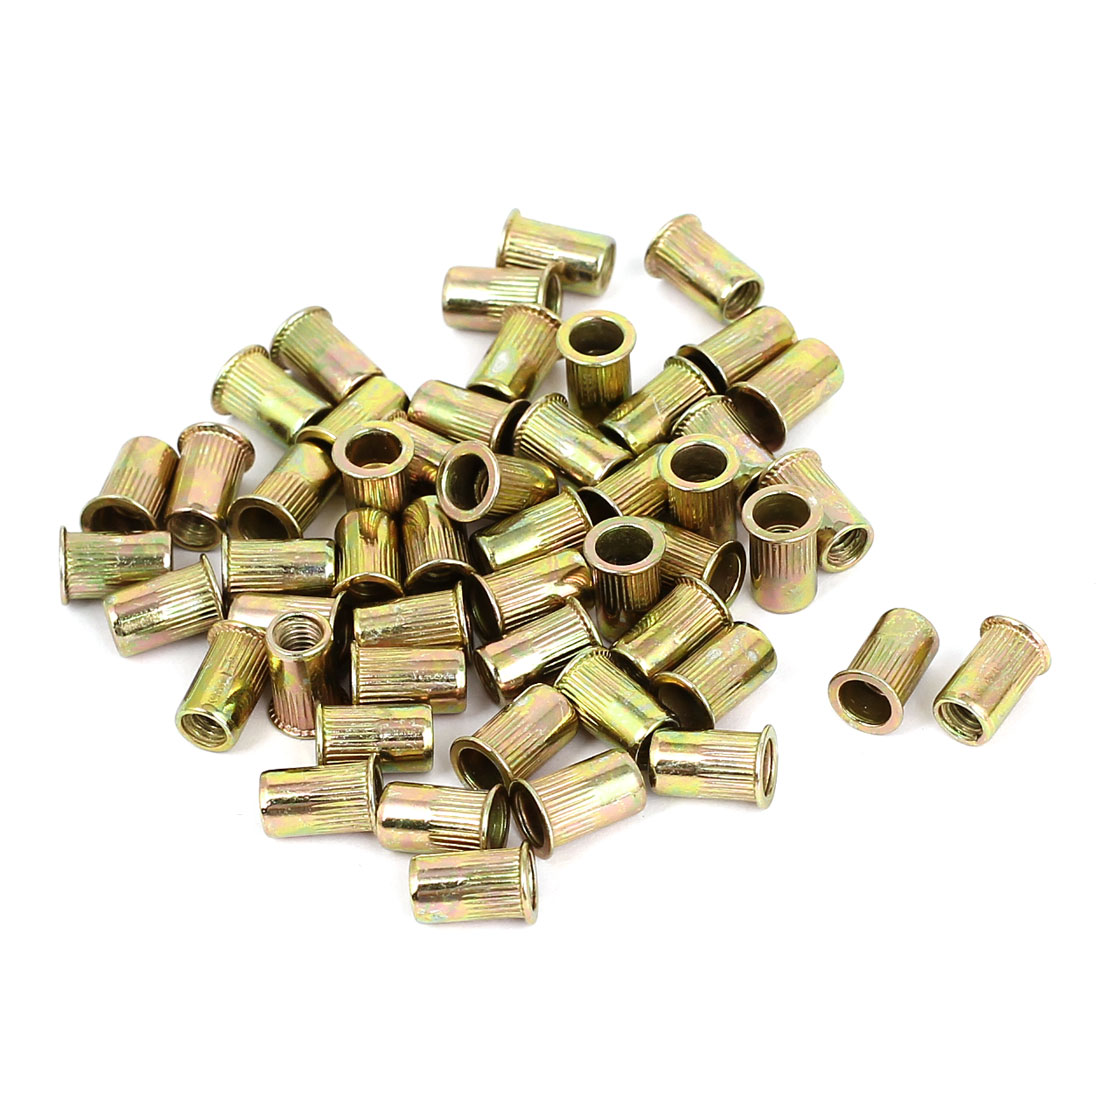 50pcs M4 Serrated Body Threaded Blind Rivet Nuts Inserts Nutserts Fasteners